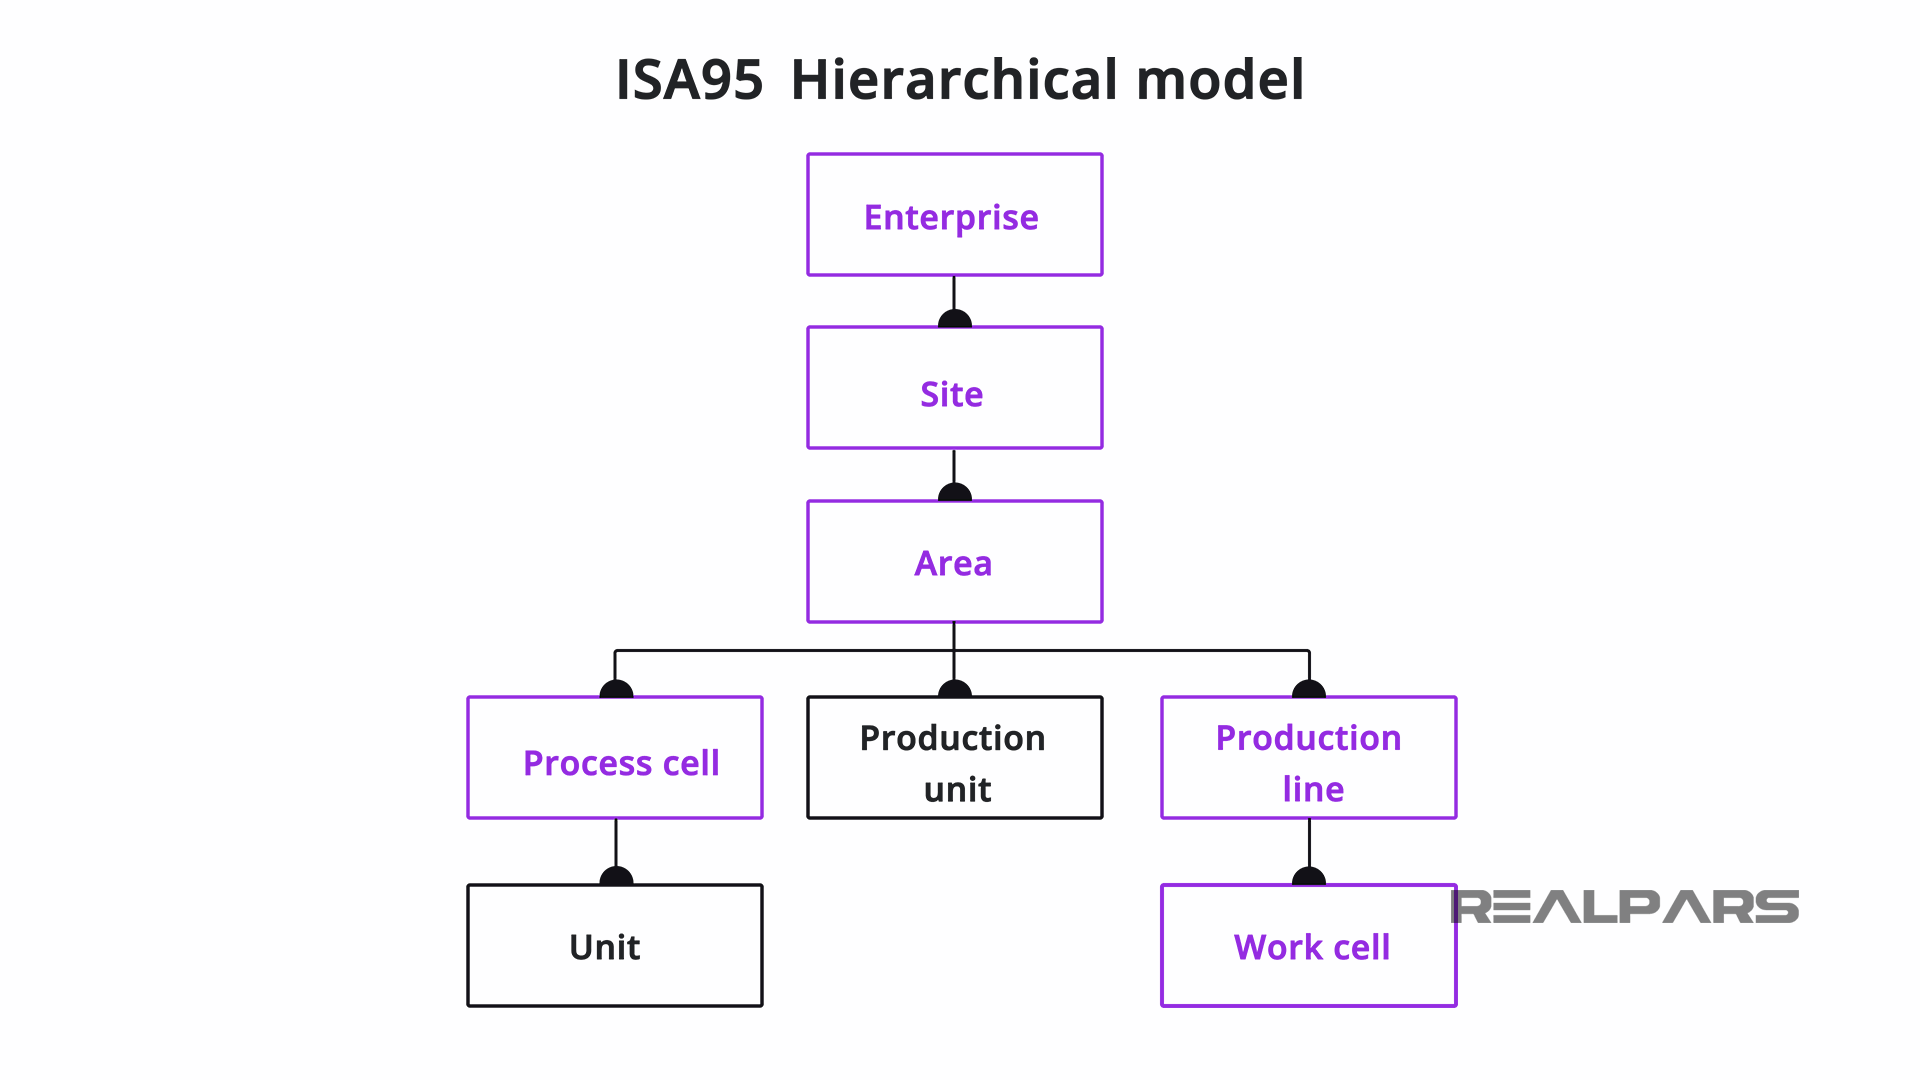 ISA 95 Hierarchical Model